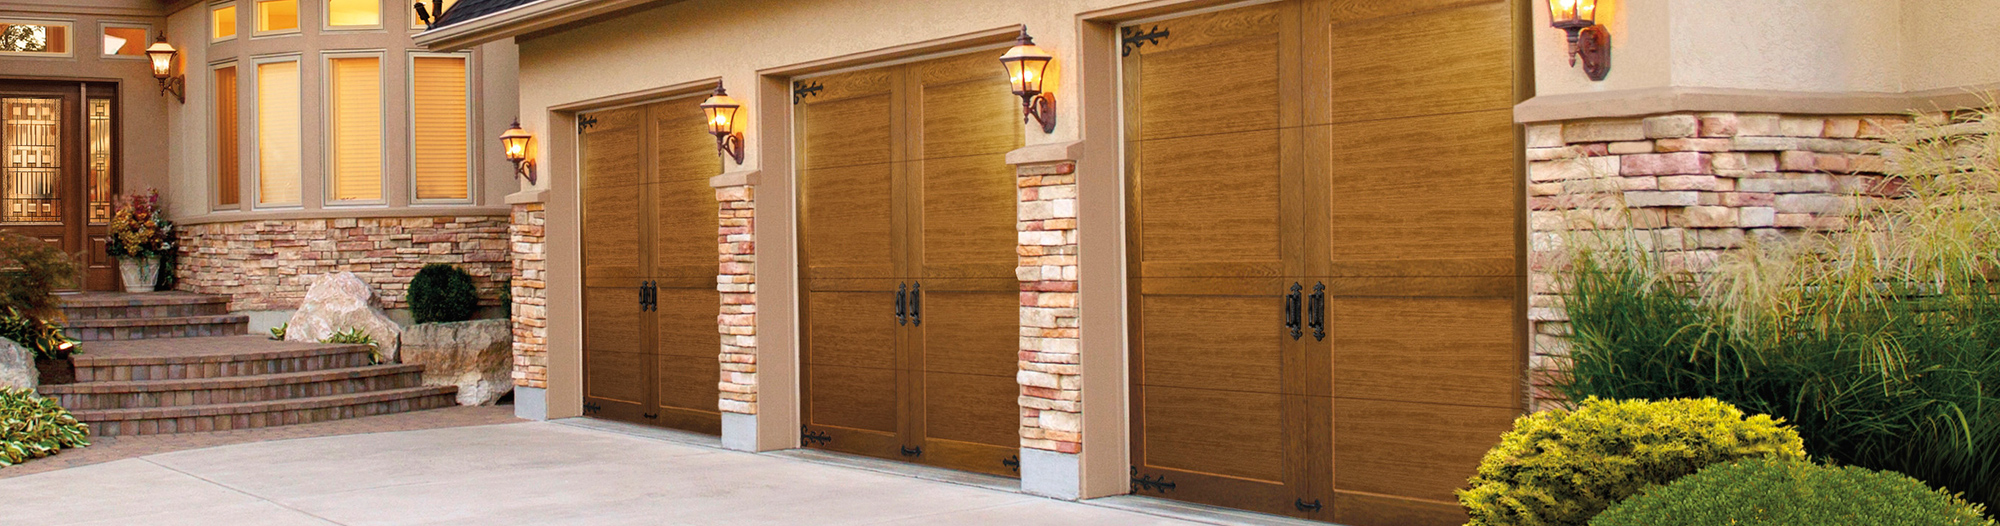 Garage Doors In Sewell Nj South Jersey Cherry Hill Nj